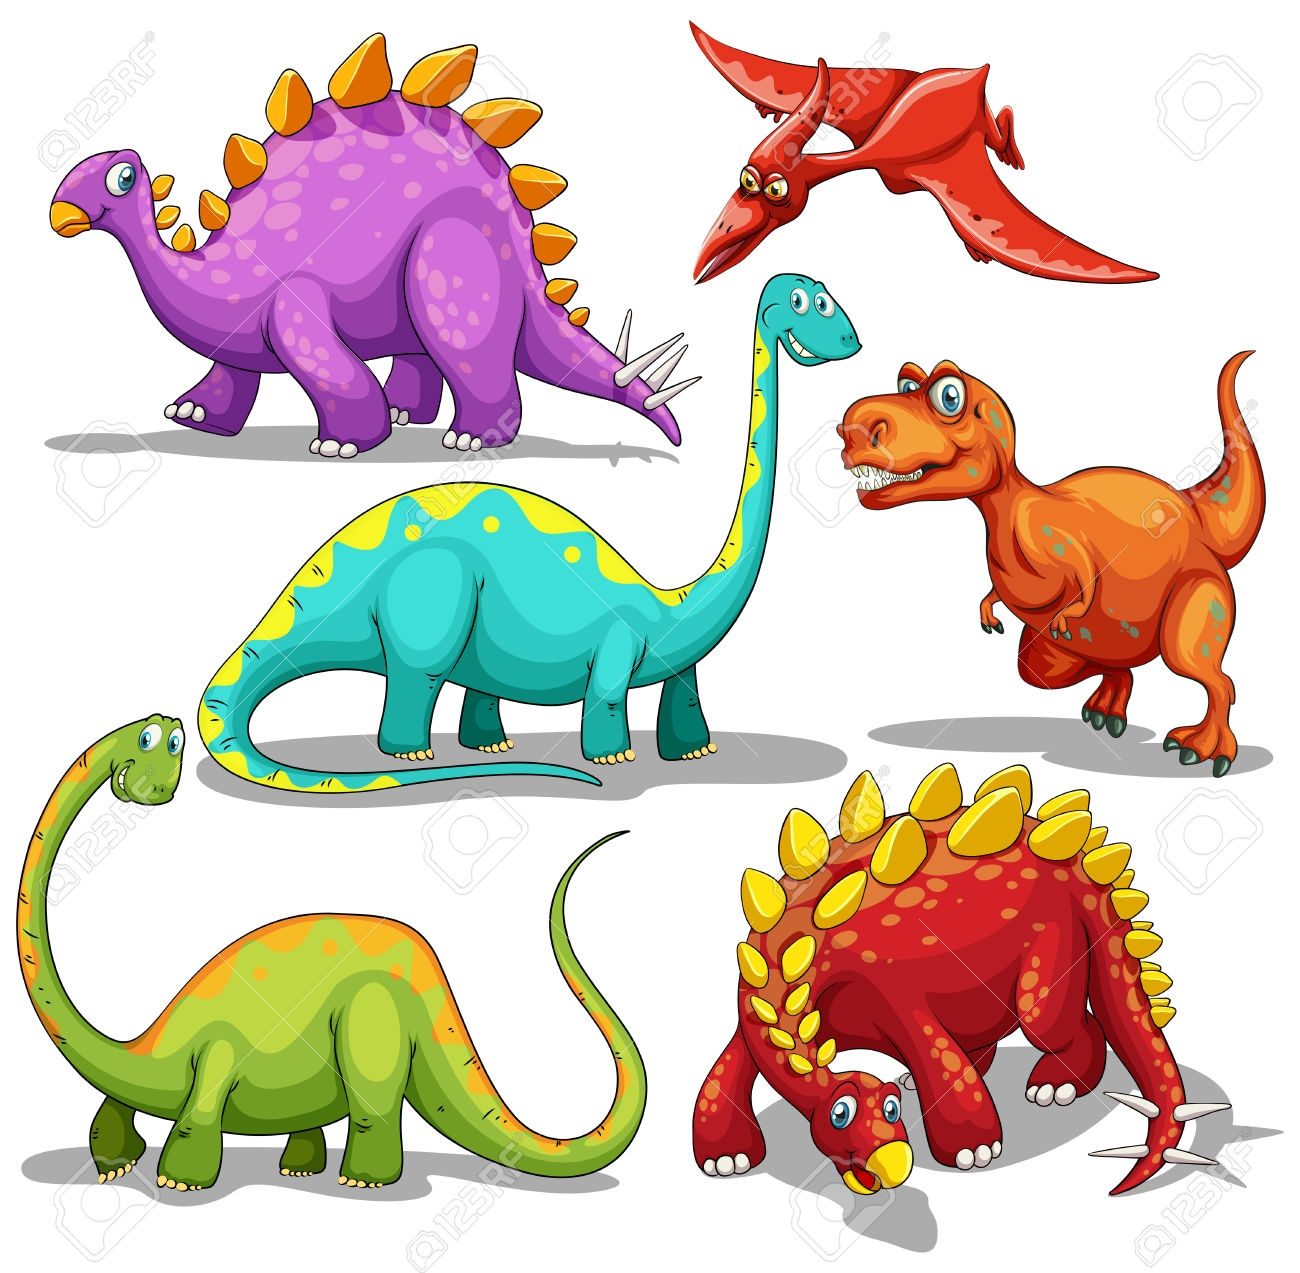 Dinosaurs Clipart.